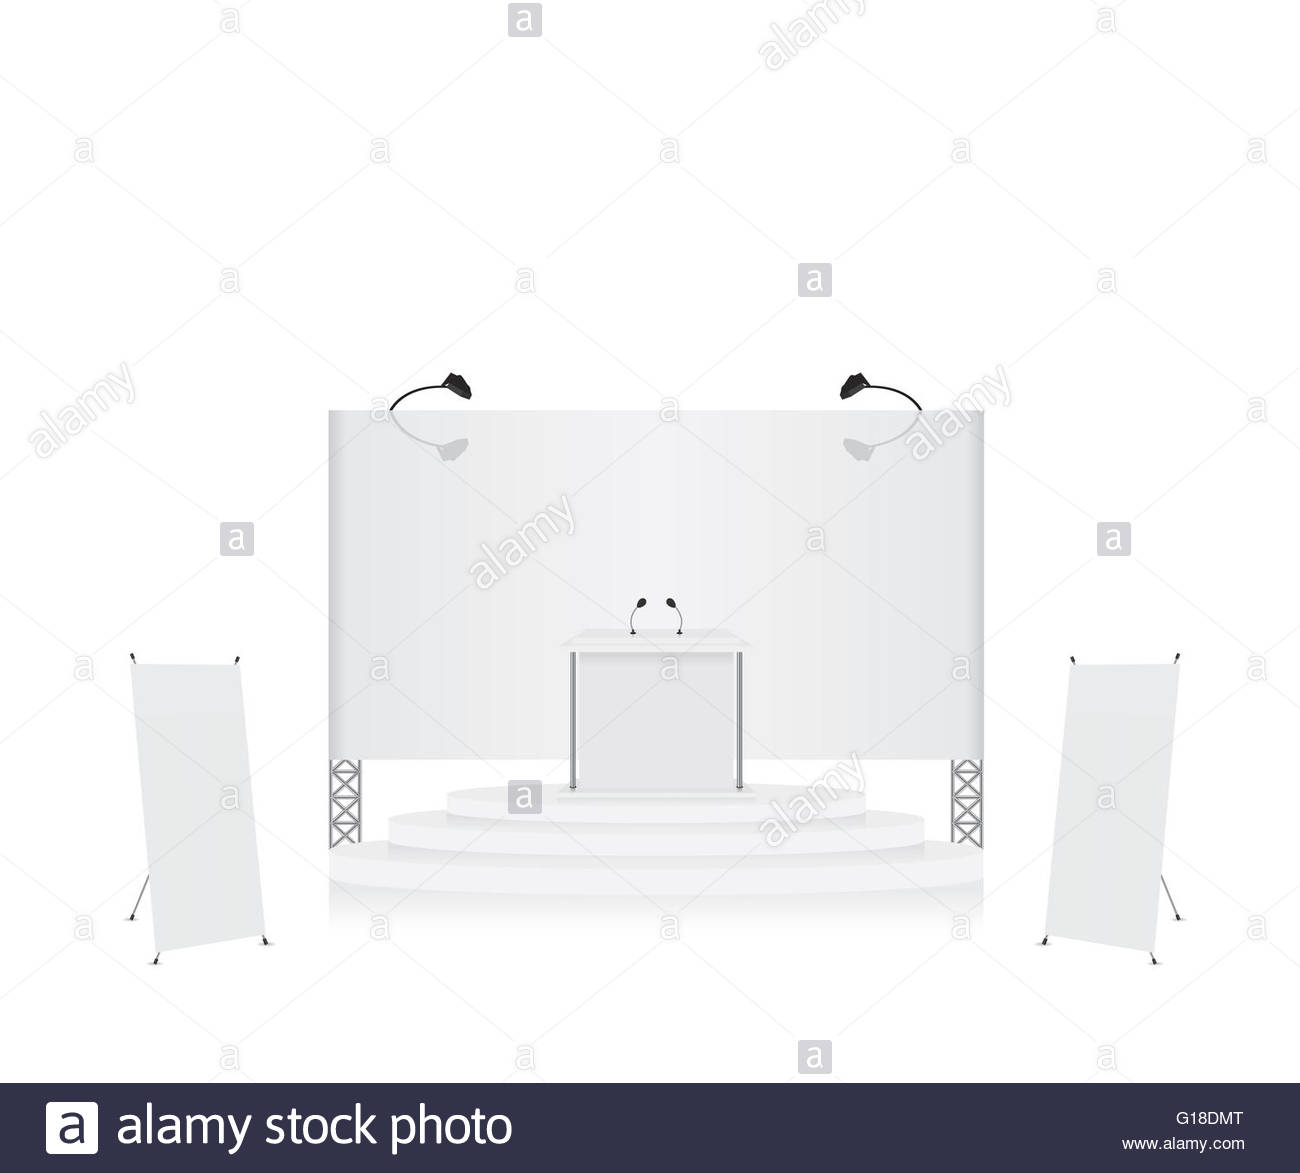 Exhibition Stand Drawing : Podium trade exhibition stand and x stand banner illustration stock